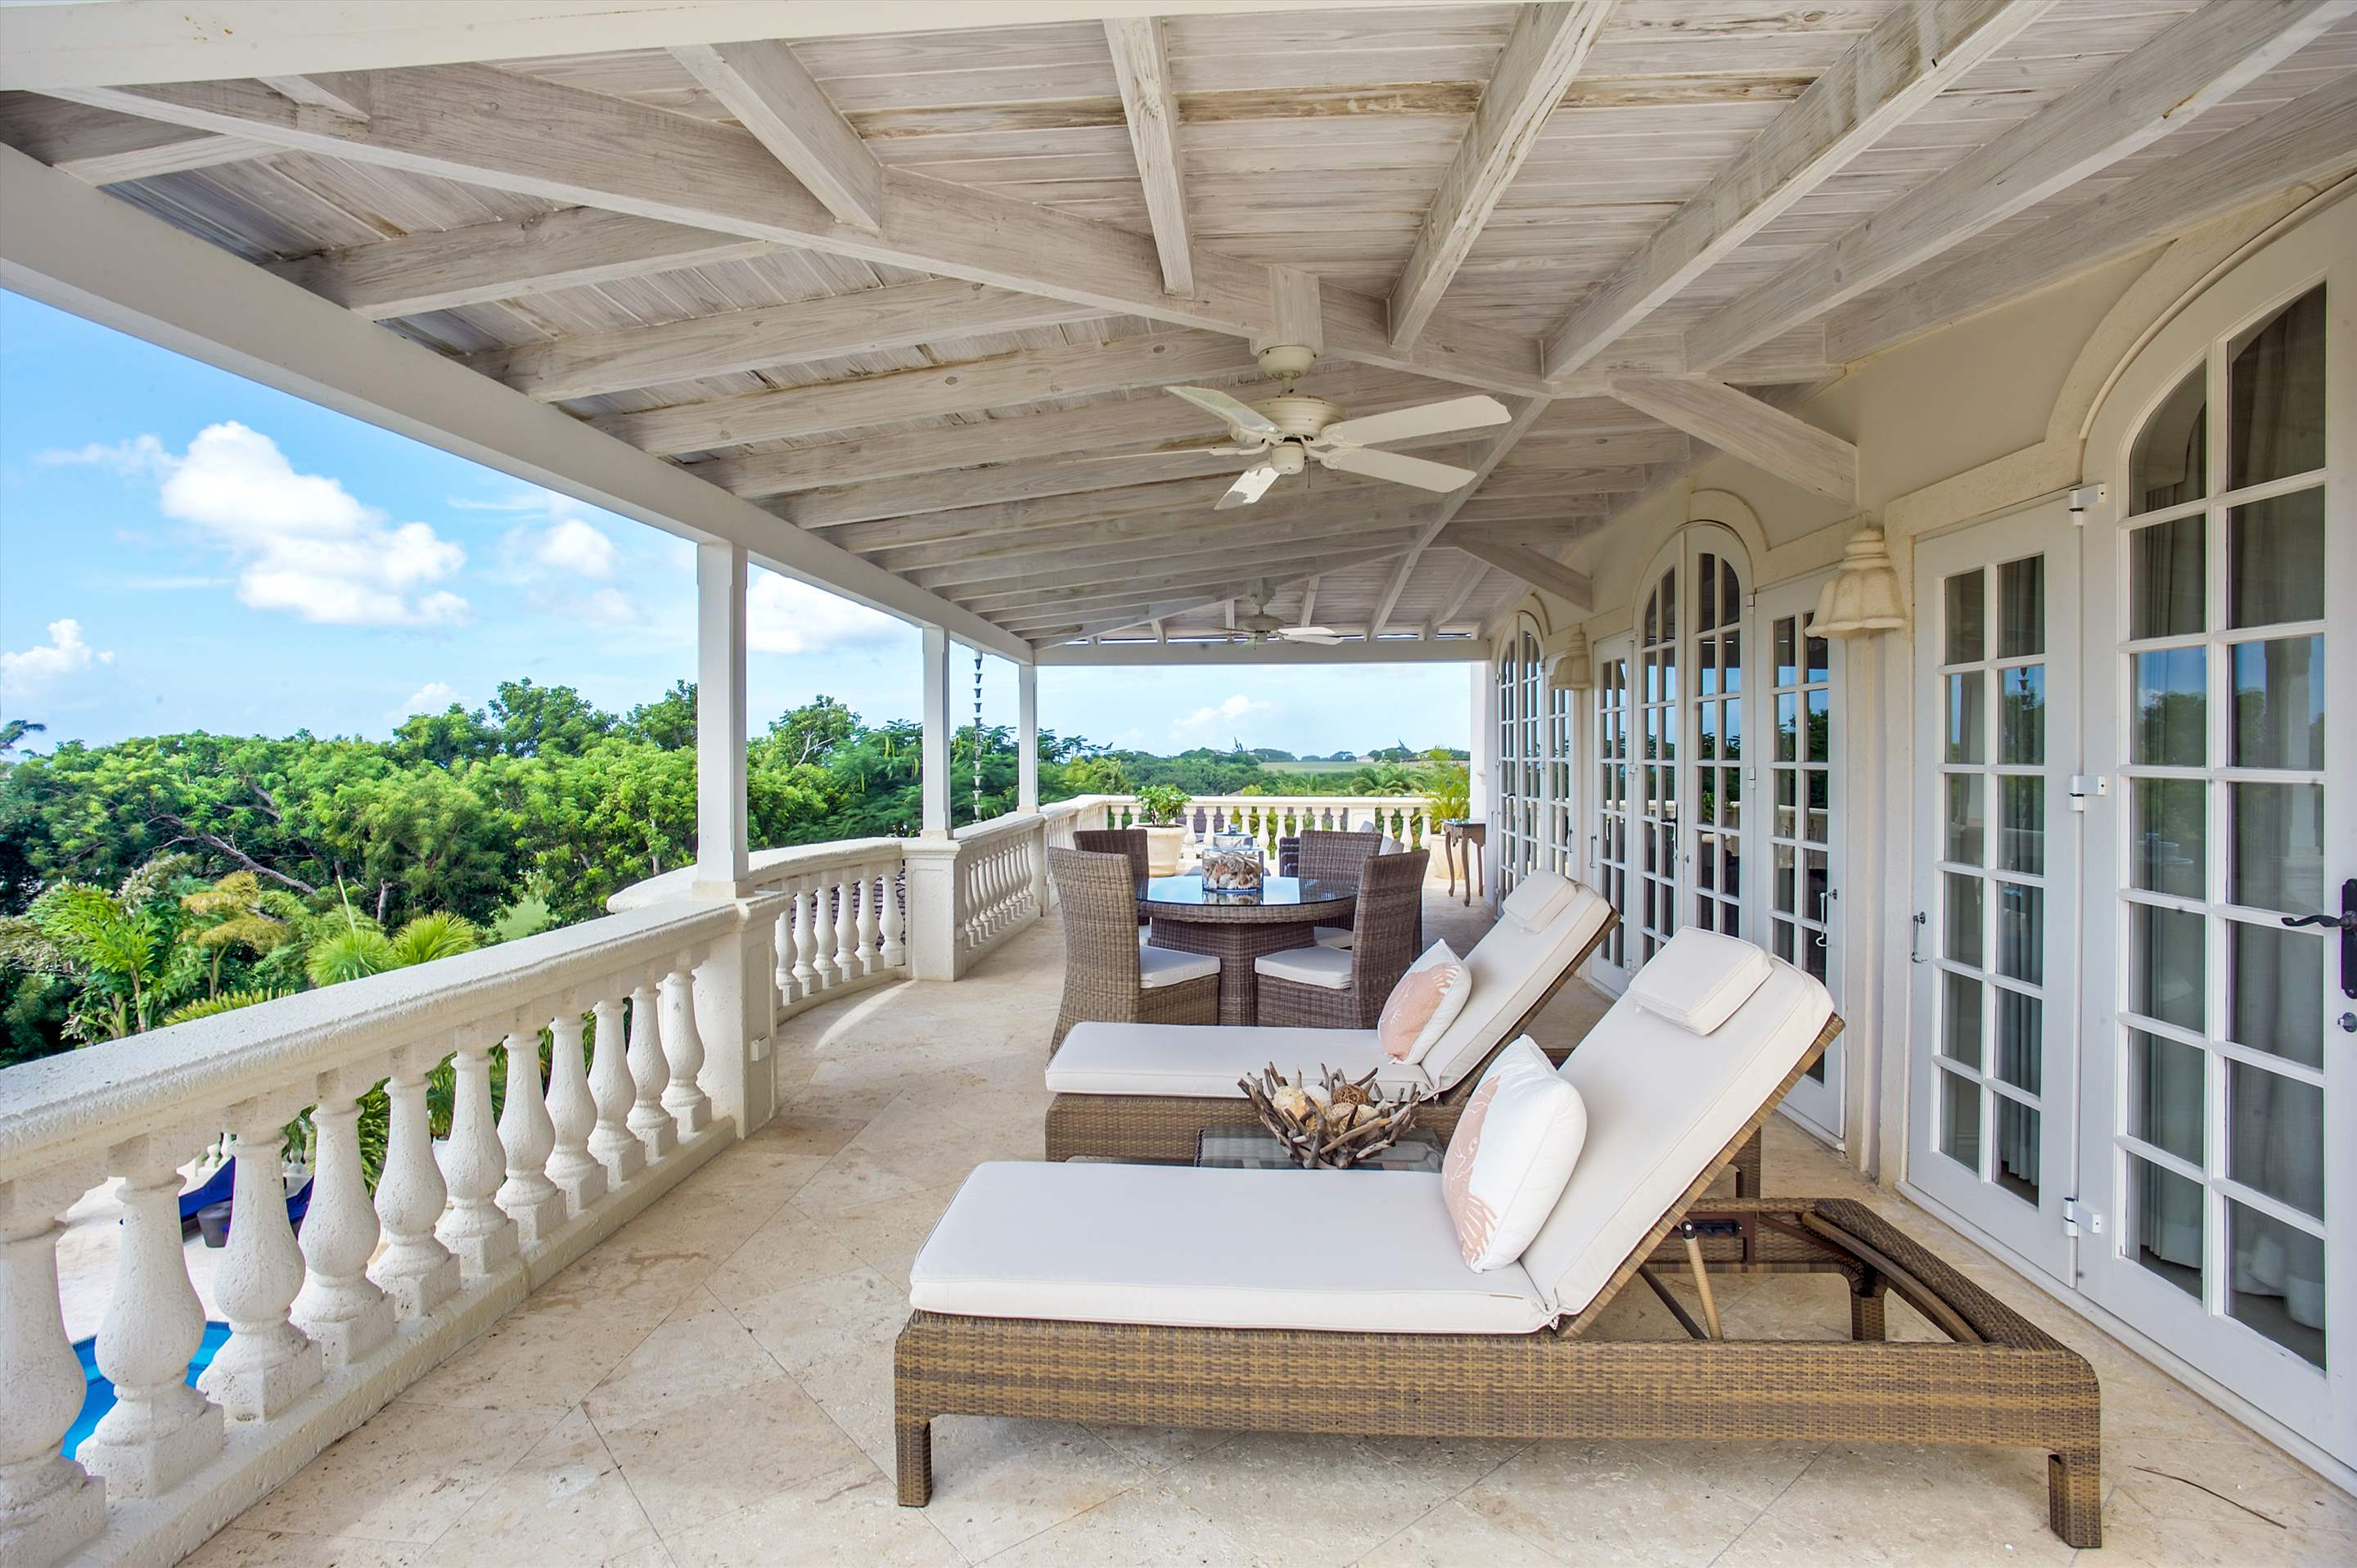 Plantation House, Royal Westmoreland, 6 bedroom, 6 bedroom villa in St. James & West Coast, Barbados Photo #7